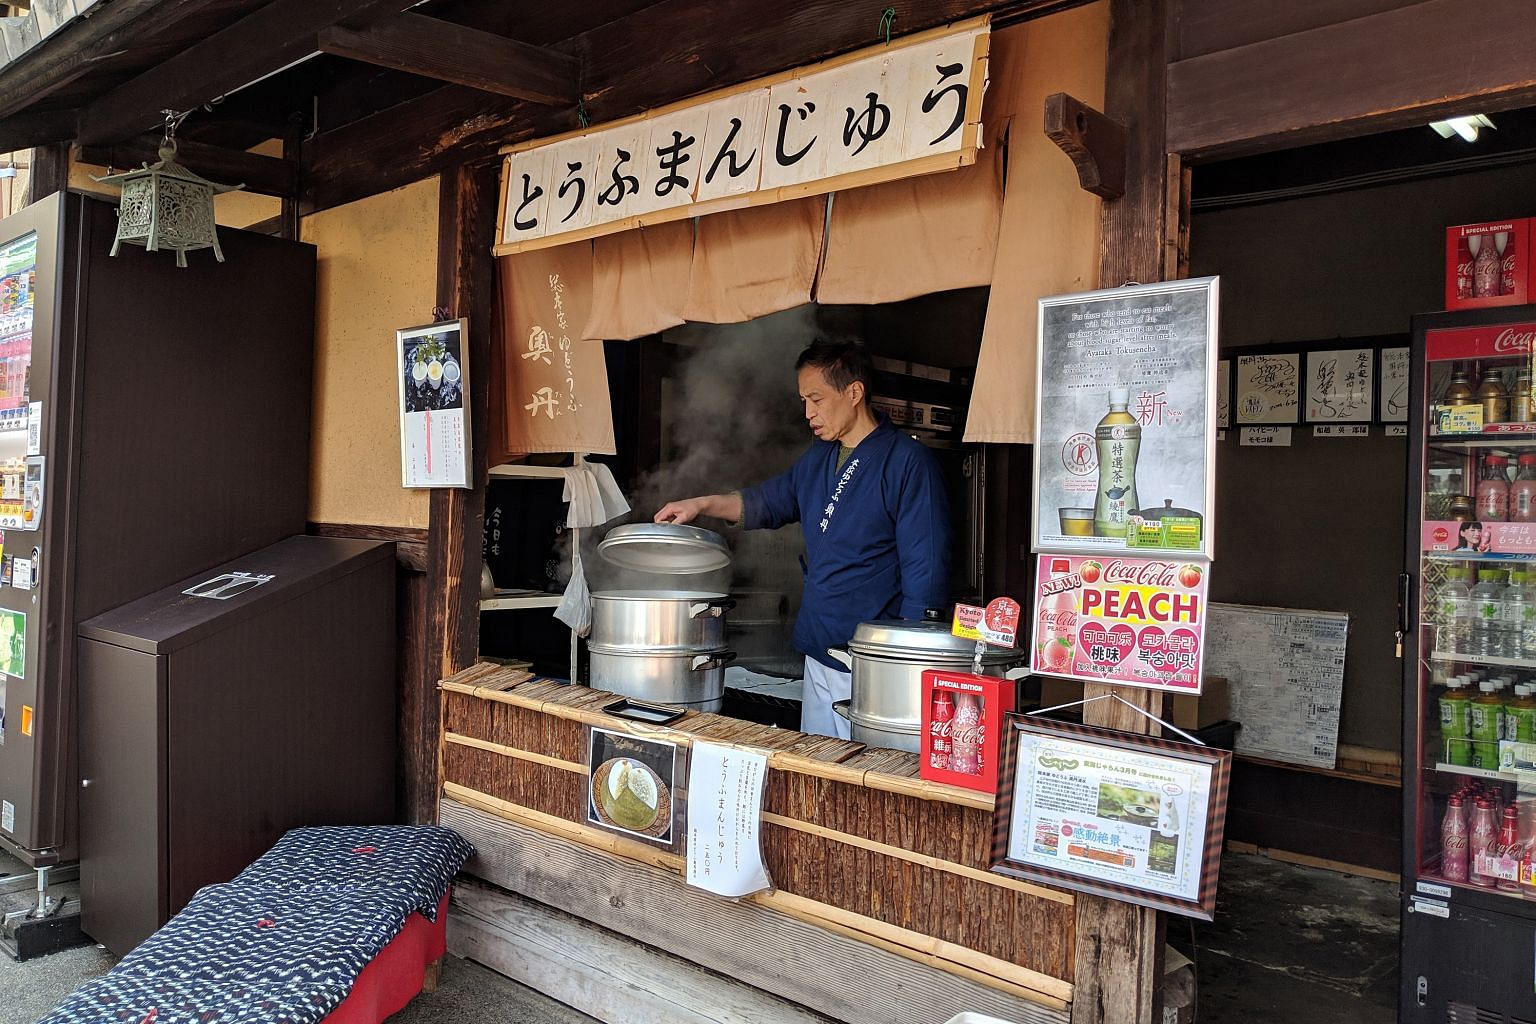 Fillings for tofu buns, such as those sold at this hole-in-the-wall (above), are made from seasoned soy pulp.